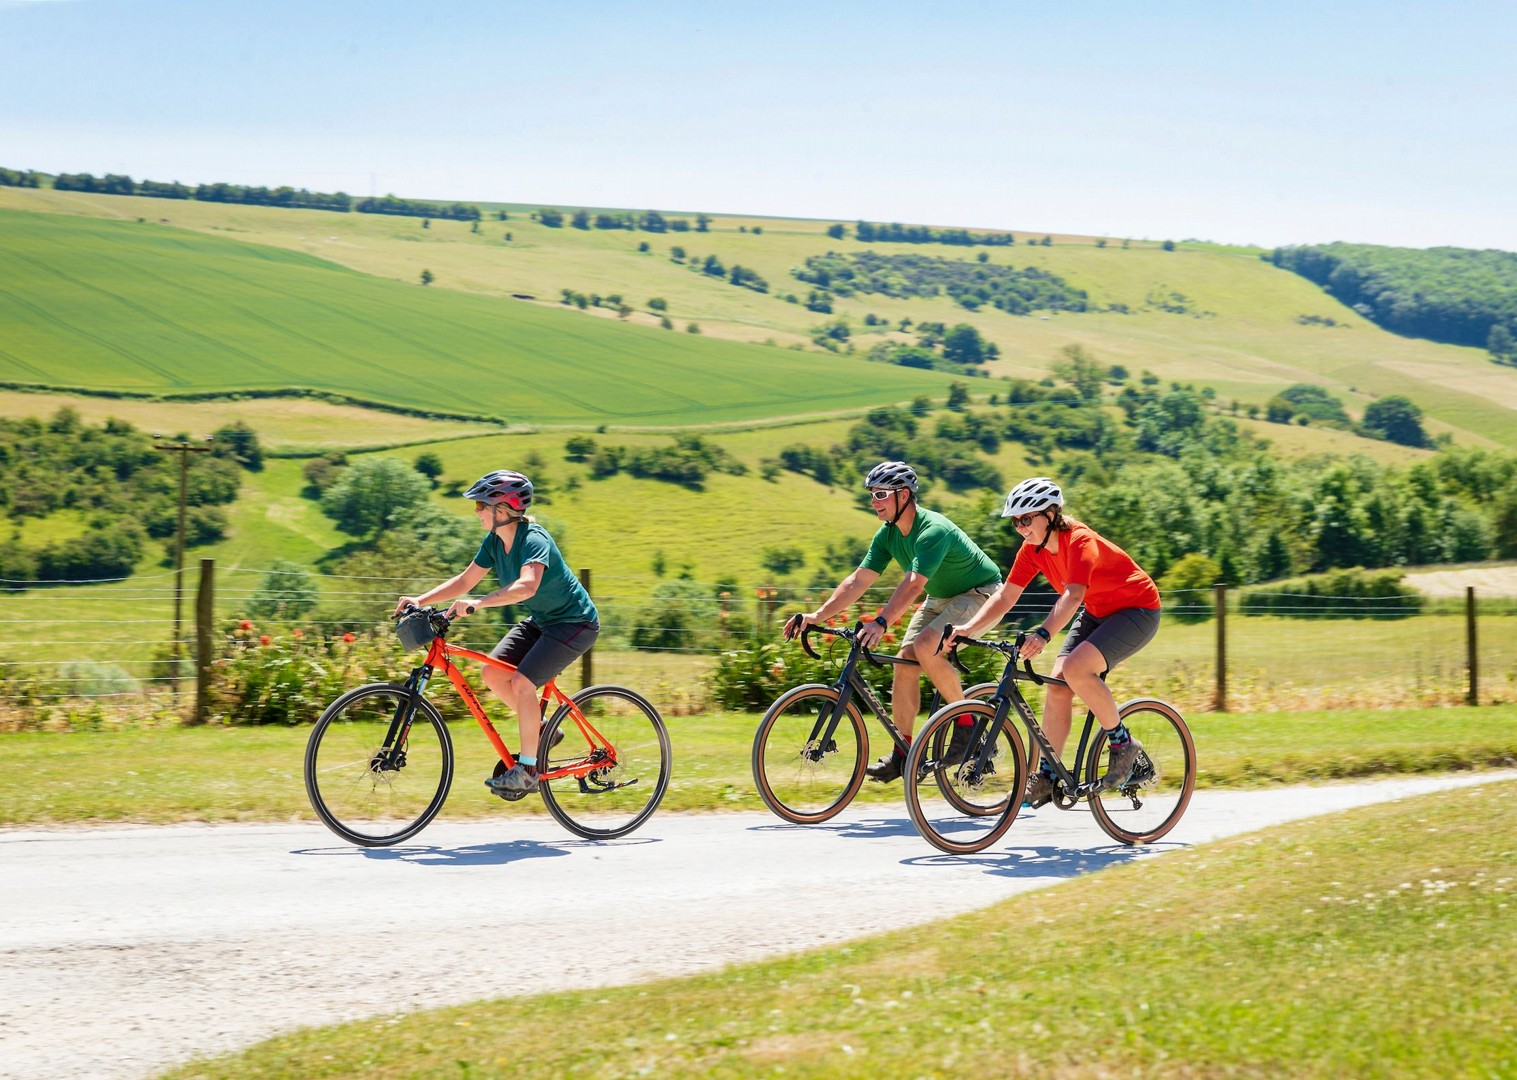 RussellBurton_20180626_2DX8088.jpg - UK - Yorkshire Wolds - 5 Days Cycling - Self-Guided Leisure Cycling Holiday - Leisure Cycling